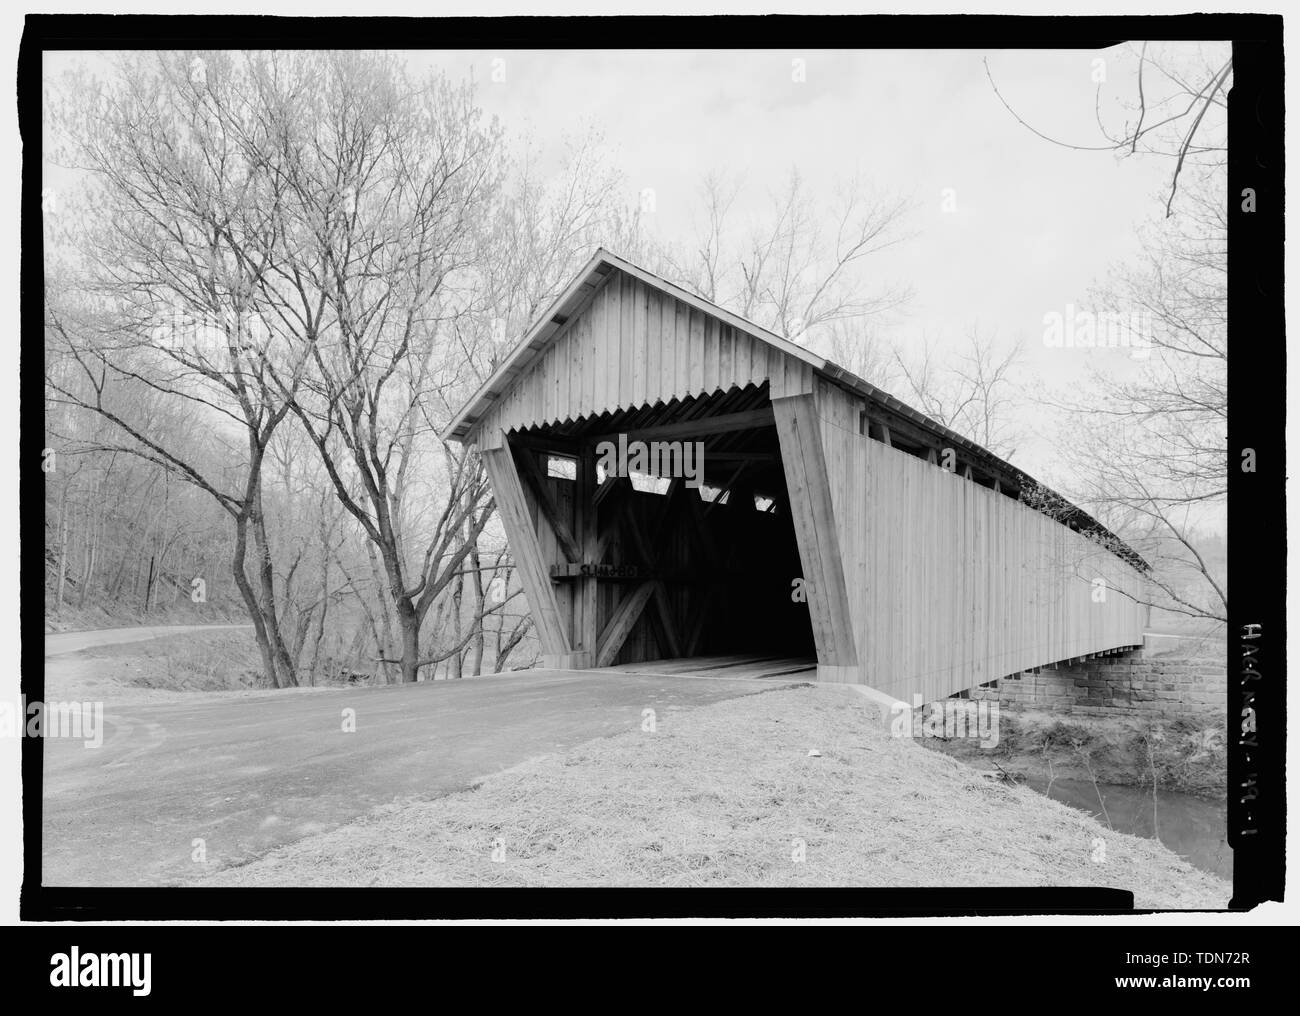 Perspective, due north. - Bennett's Mill Bridge, Spanning Tygart's Creek, East Tygart's Creek Road (CR 1215), Lynn, Greenup County, KY; Bennett, B F; Reid, A L; Wheeler, Isaac Hastings; Wheeler, William; McGee, E A; Darlington, Joseph; Darlington, Gabriel; Bennett, William  P; Bennett, Benjamin  F; Federal Highway Association; Bower Bridge Company; Bower, Louis; Intech Contracting; Marston, Christopher, project manager; Christianson, Justine, transmitter; Federal Highway Administration, sponsor - Stock Image